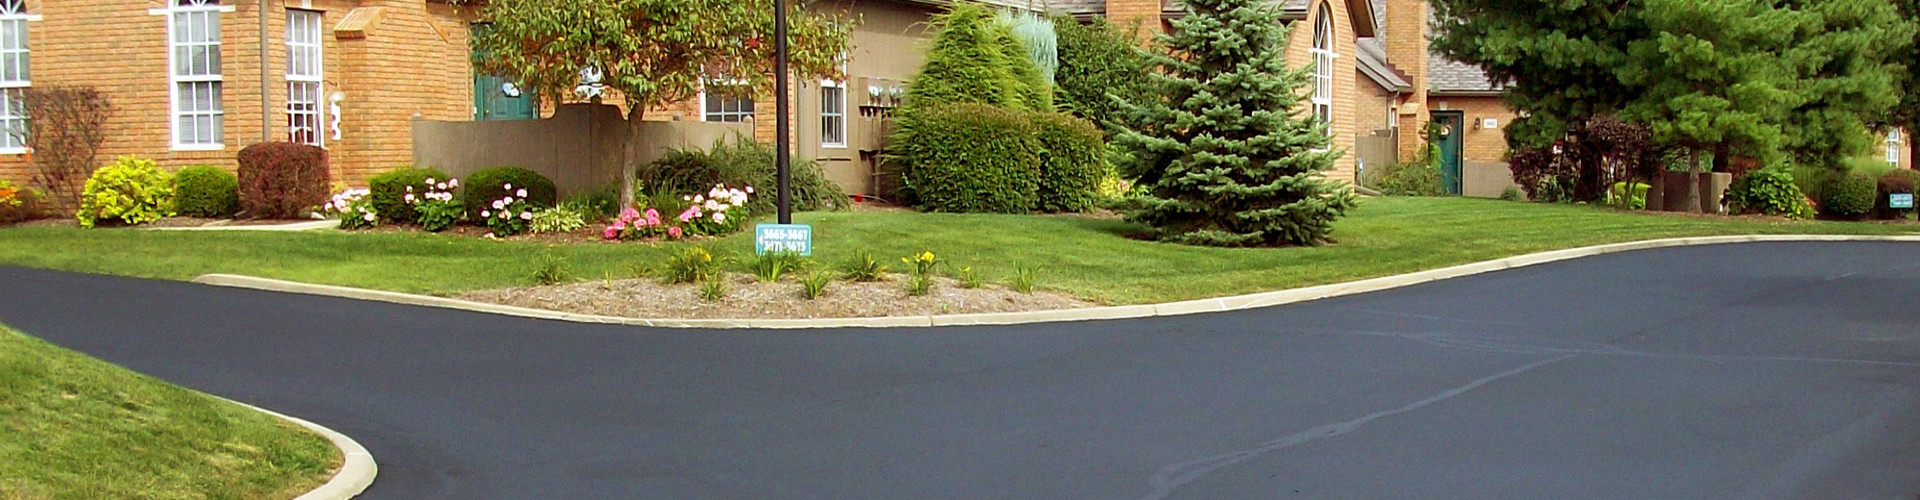 Residential paving baraboo wi